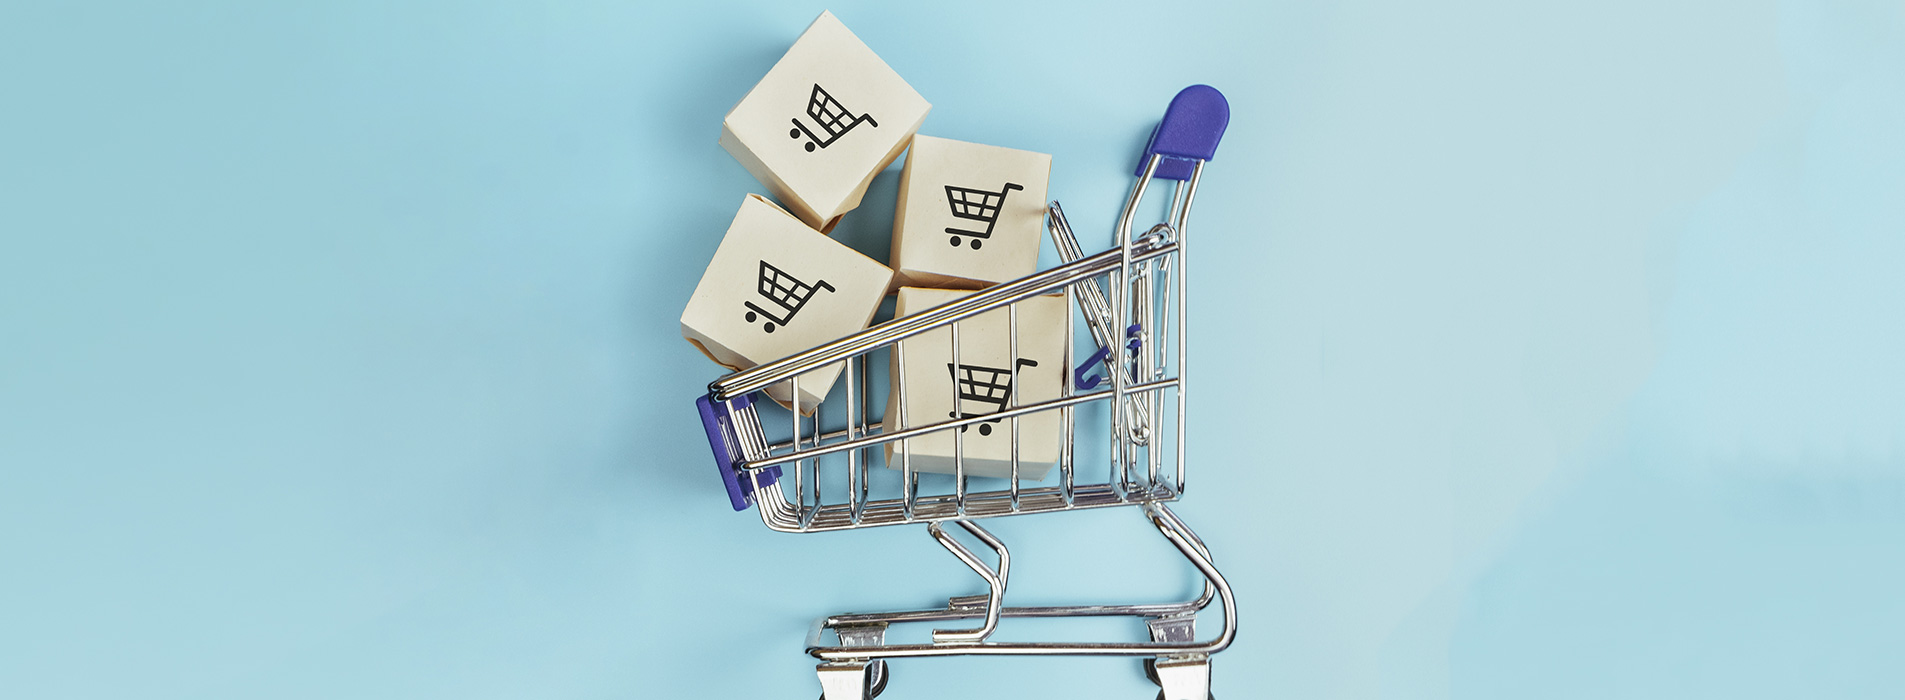 As your online business grows, who's looking after your fulfilment?